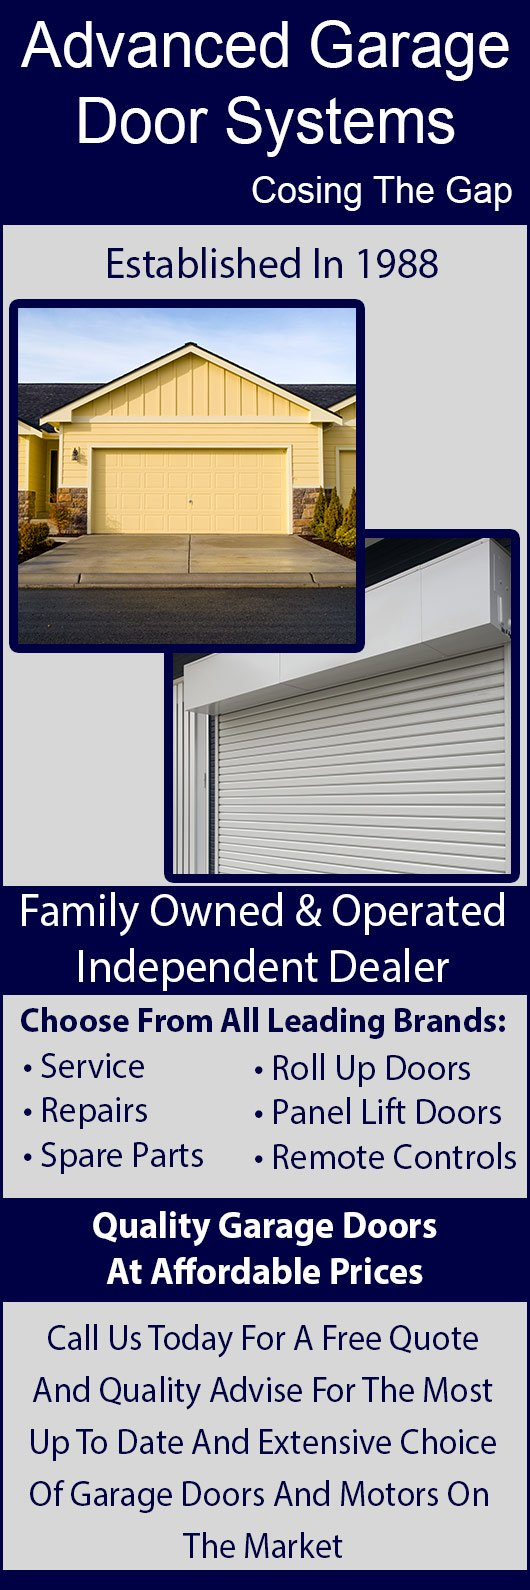 Advanced Garage Door Systems - Promotion  sc 1 st  Yellow Pages & Advanced Garage Door Systems - Garage Doors u0026 Fittings - 470 ... pezcame.com